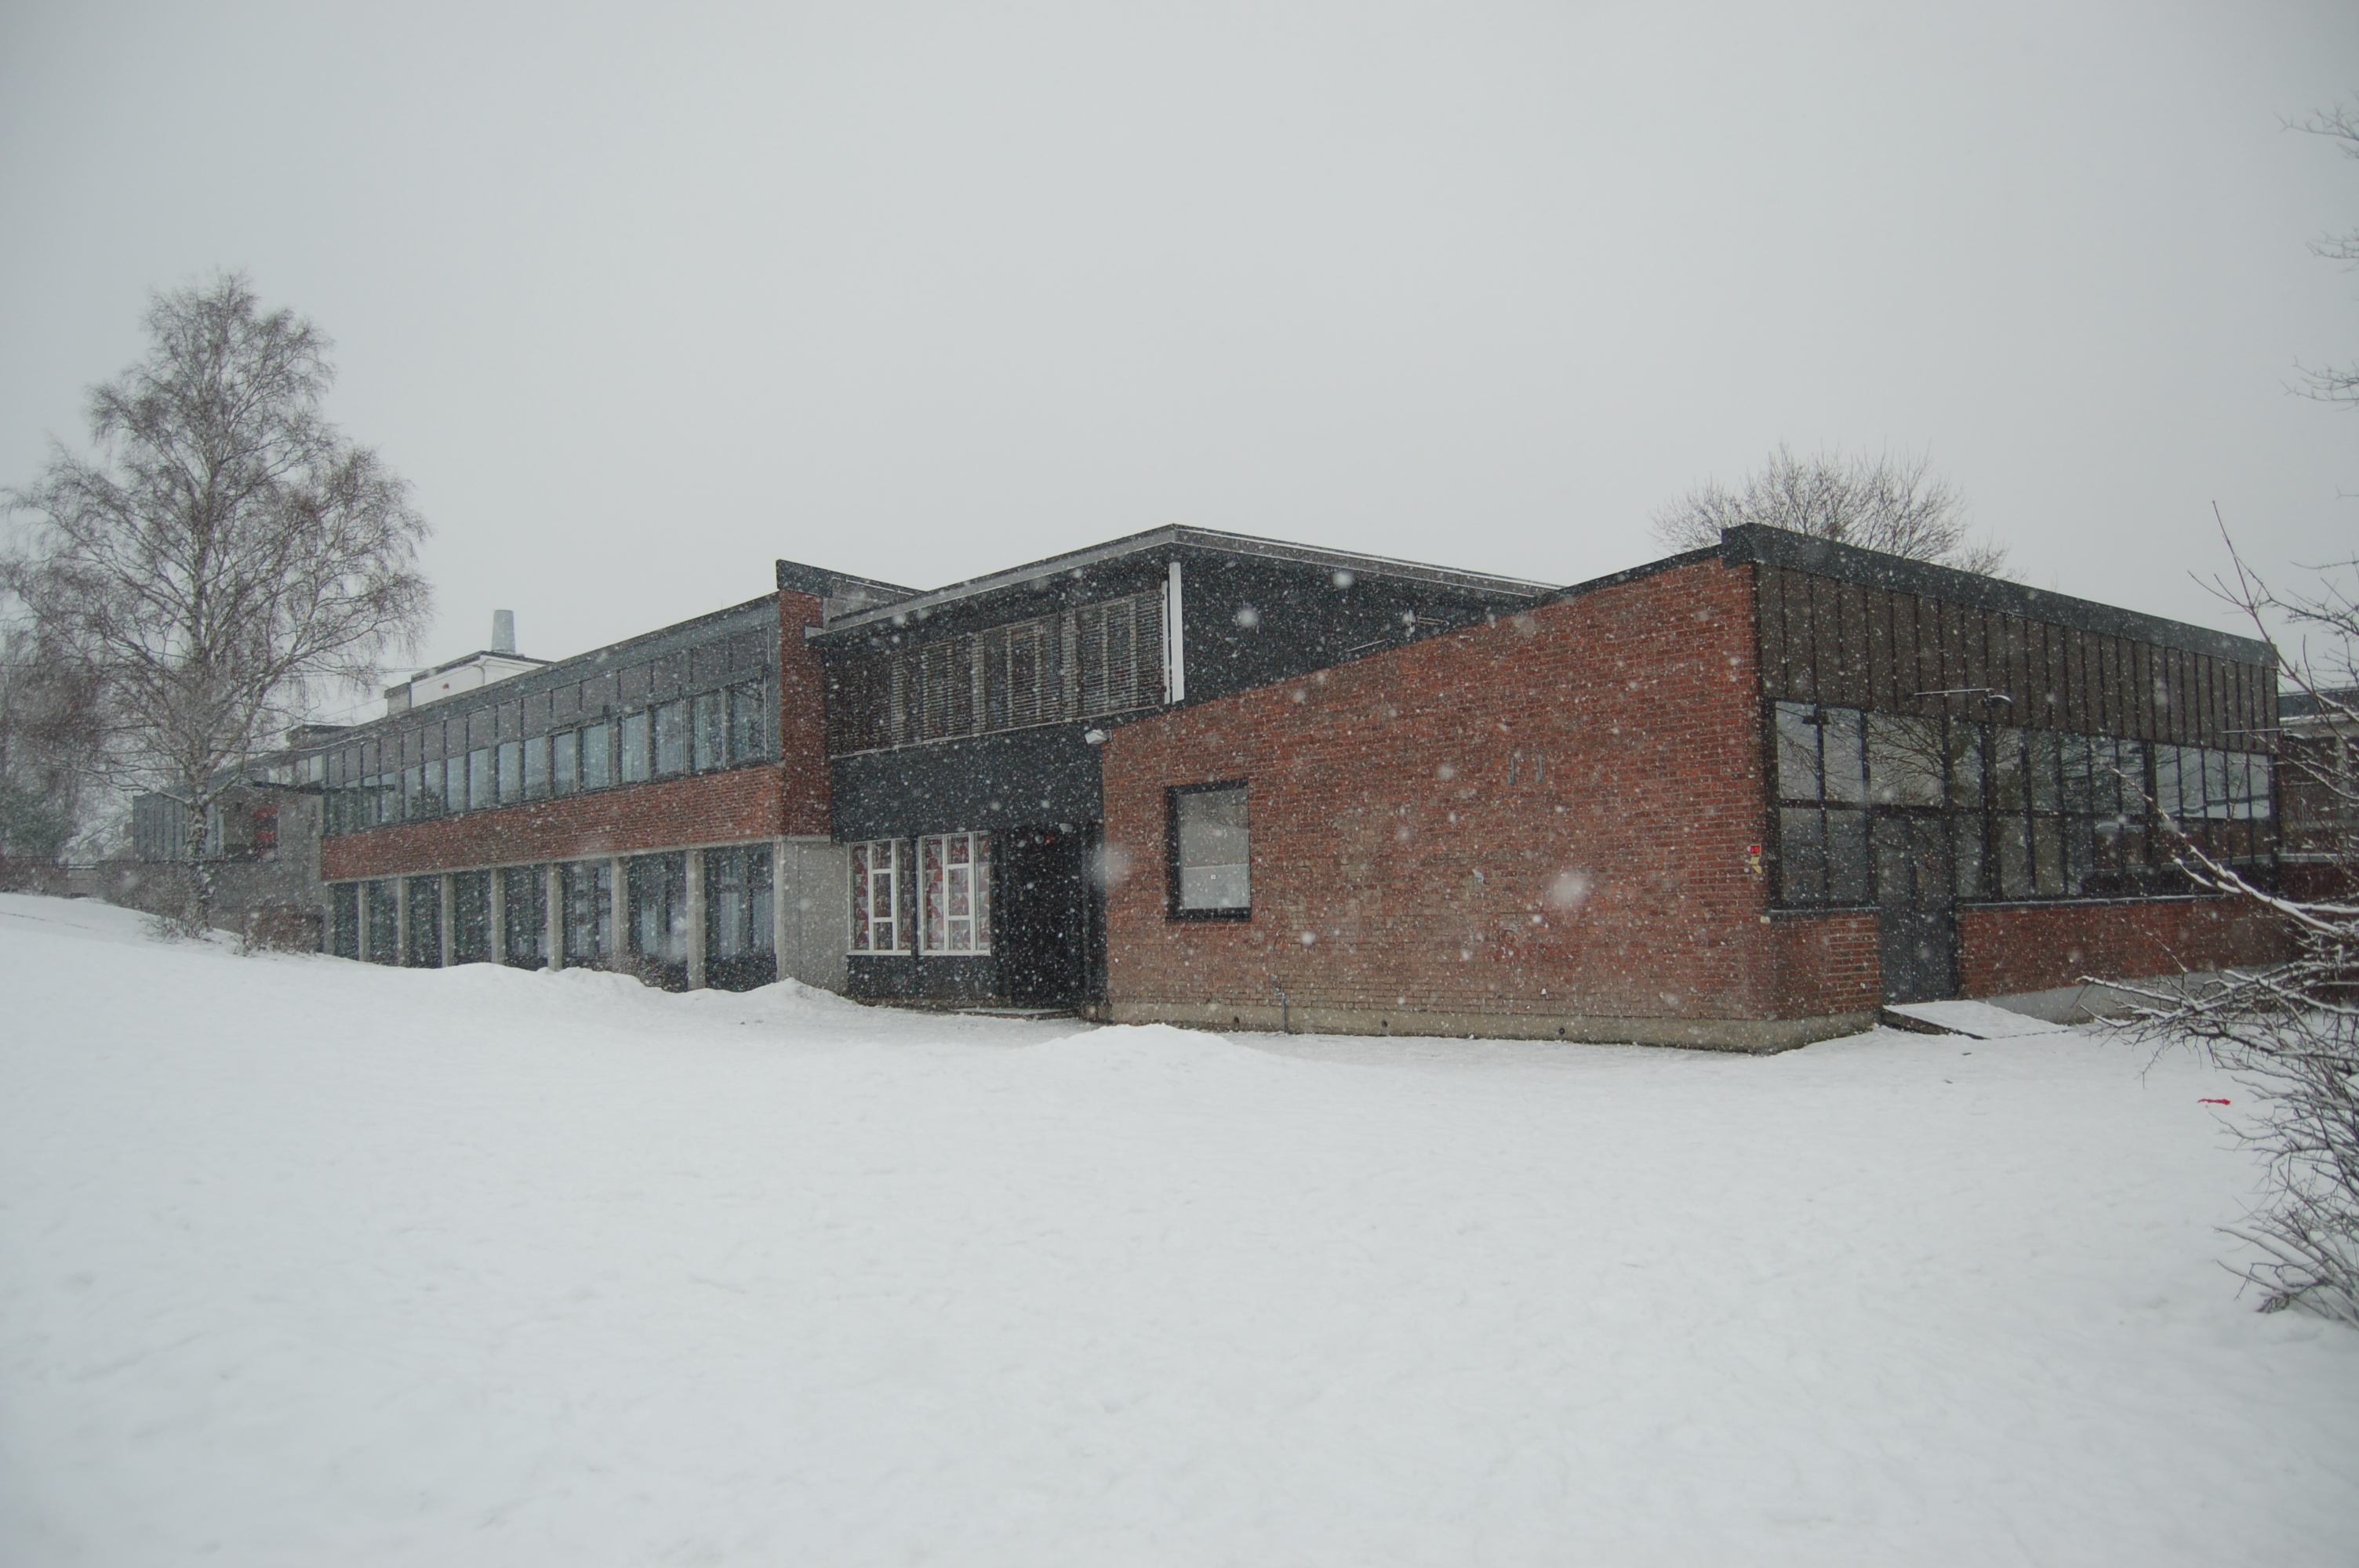 Description trosvik skole